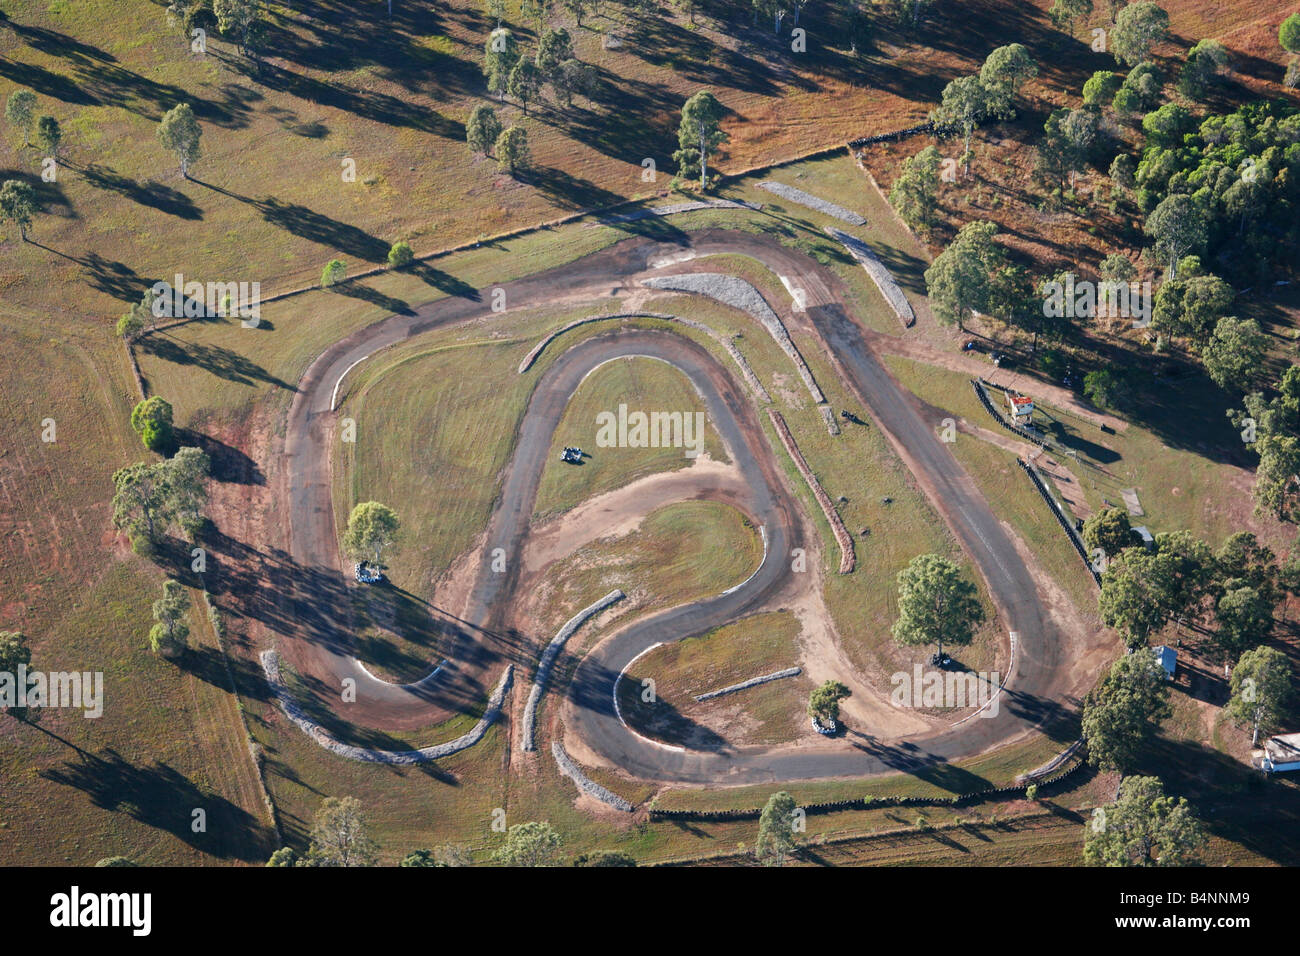 car race track aerial stock photos car race track aerial stock images alamy. Black Bedroom Furniture Sets. Home Design Ideas